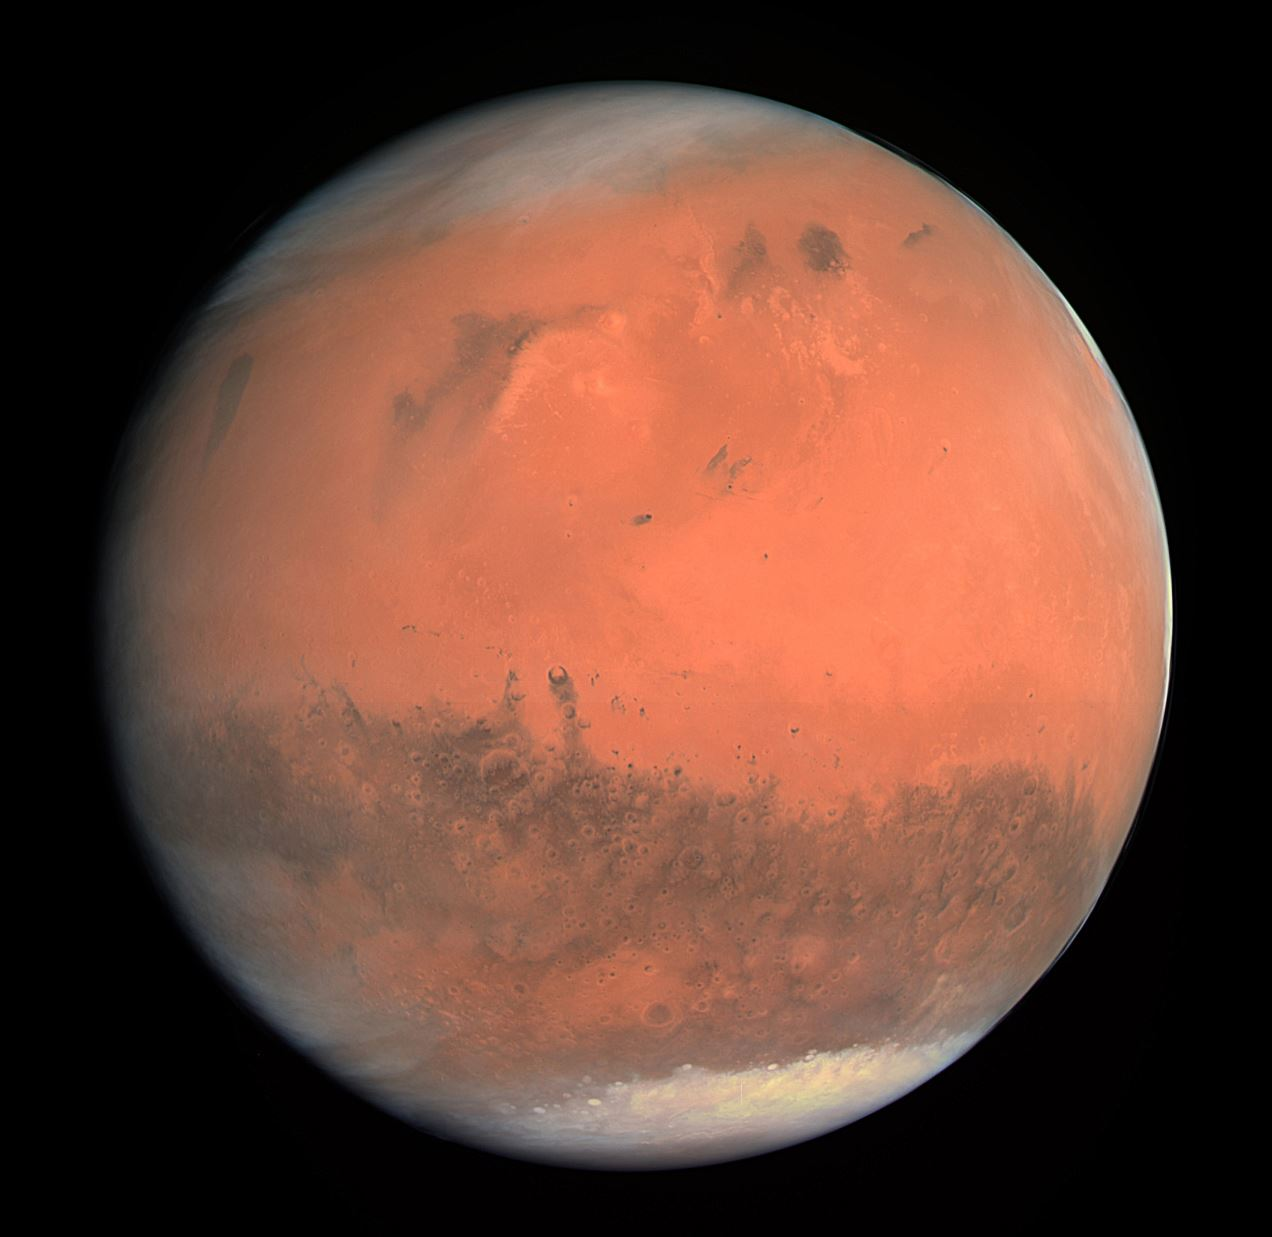 True color image of Mars - Image Credit:  ESA - European Space Agency & Max-Planck Institute for Solar System Research for OSIRIS Team ESA/MPS/UPD/LAM/IAA/RSSD/INTA/UPM/DASP/IDA via Wikimedia Commons